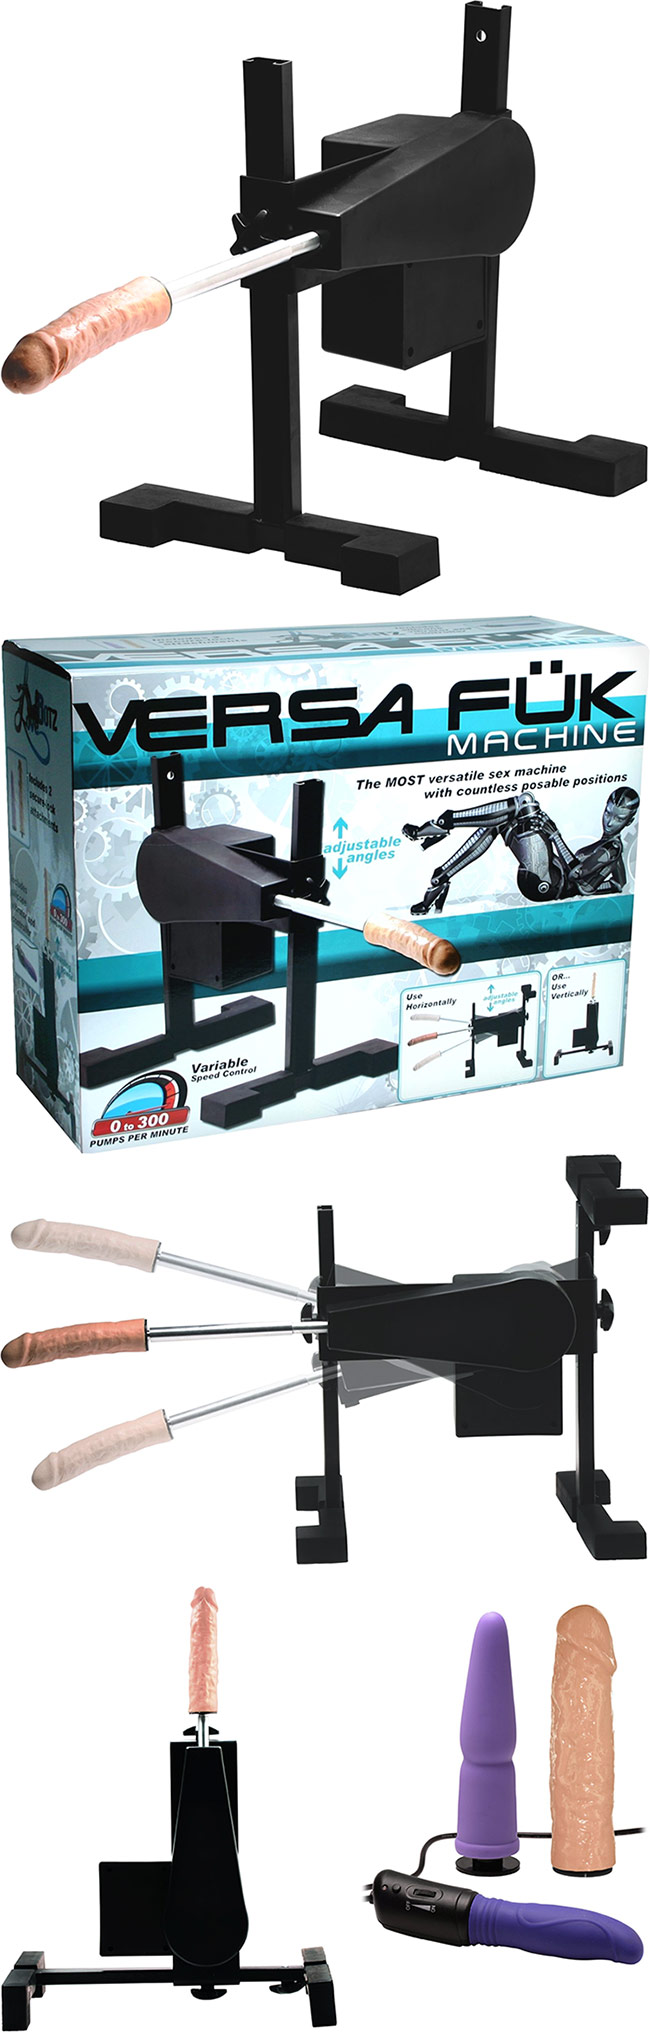 LoveBotz Versa Fuk Sex Machine